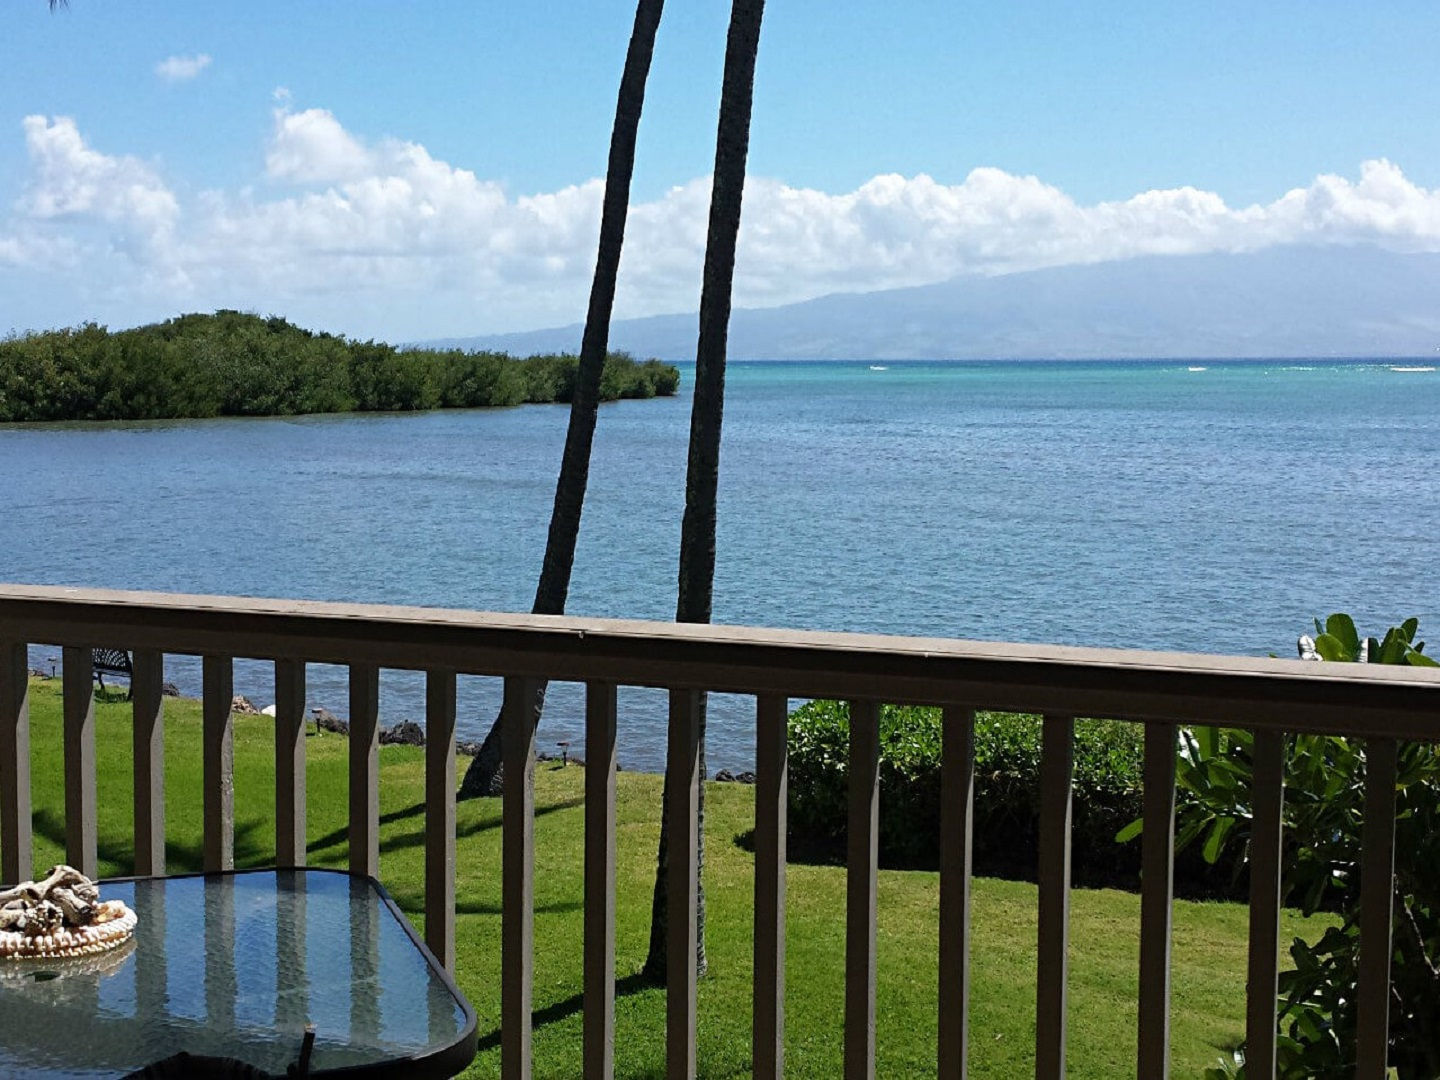 A bridge over a body of water at Ka'awa Loa Plantation Guesthouse and Retreat.